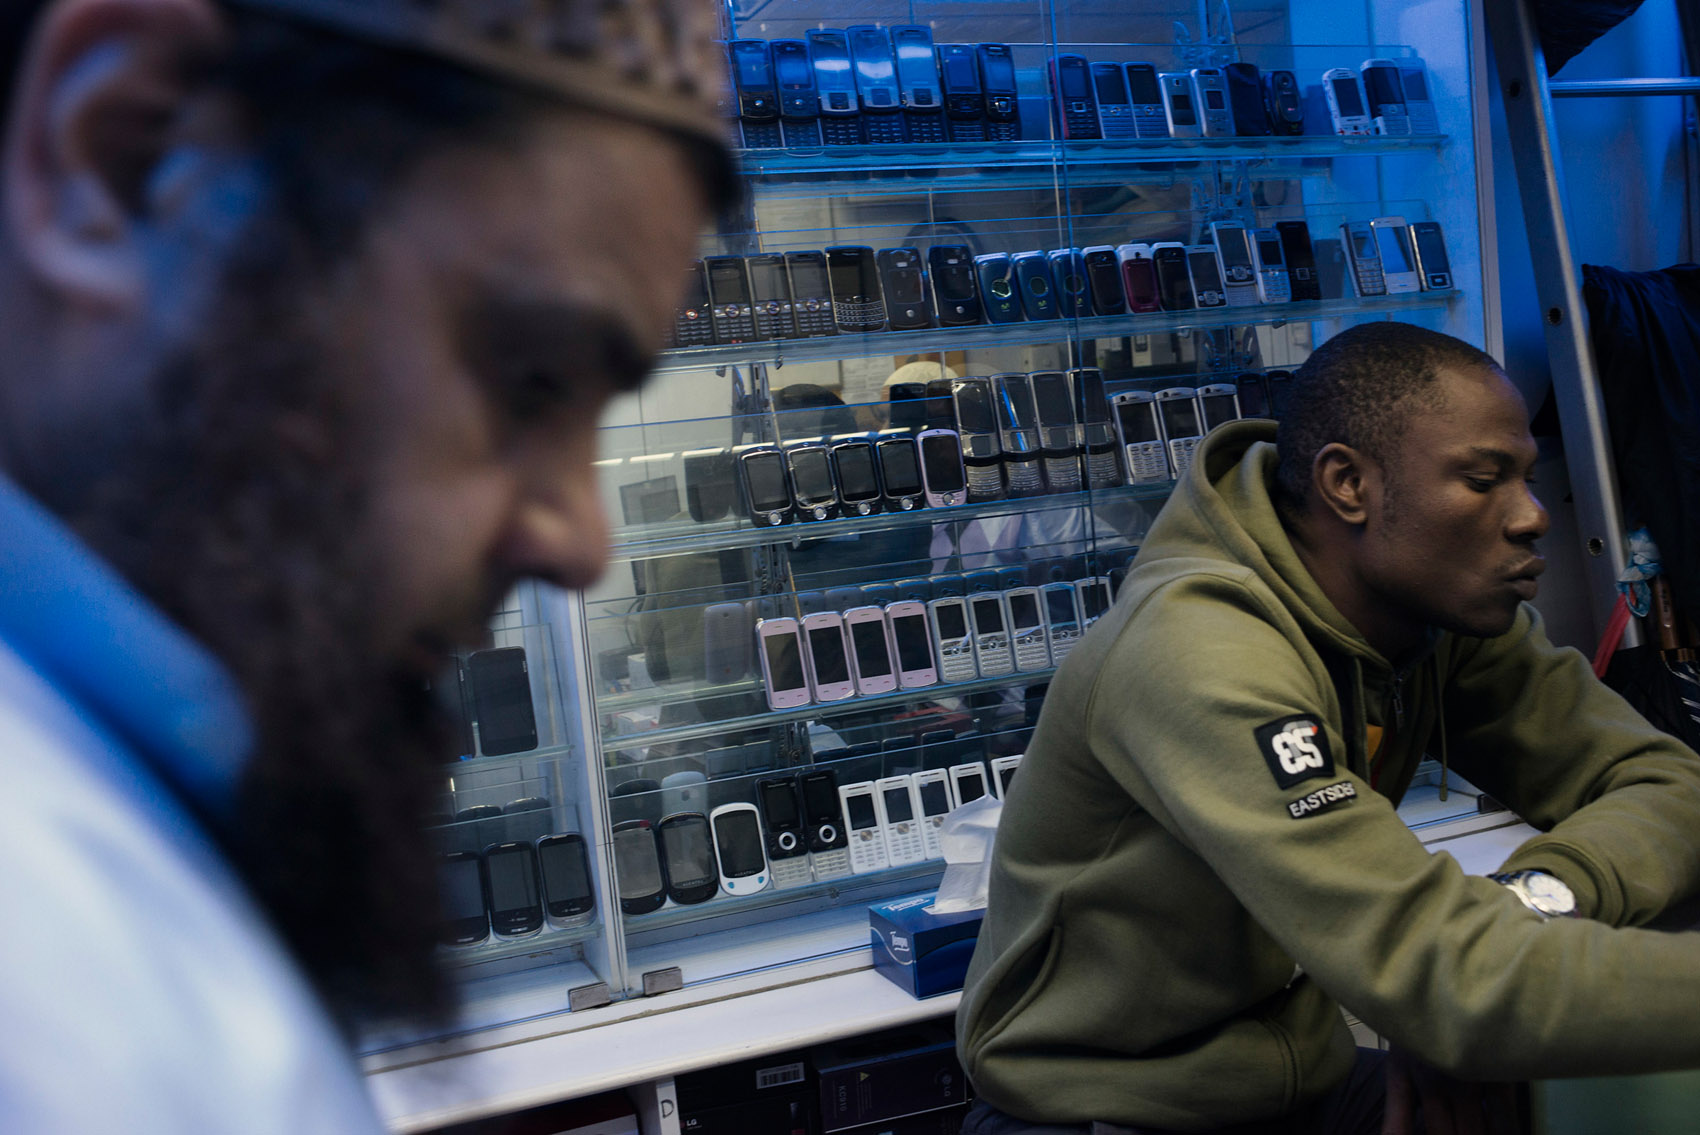 At the Chungking Mansions, in a store ran by a Pakistani businessman, an African trader is selecting mobile phones. He is planning to ship 2000 mobile phones to Douala, his ometown and the capital of Cameroon..